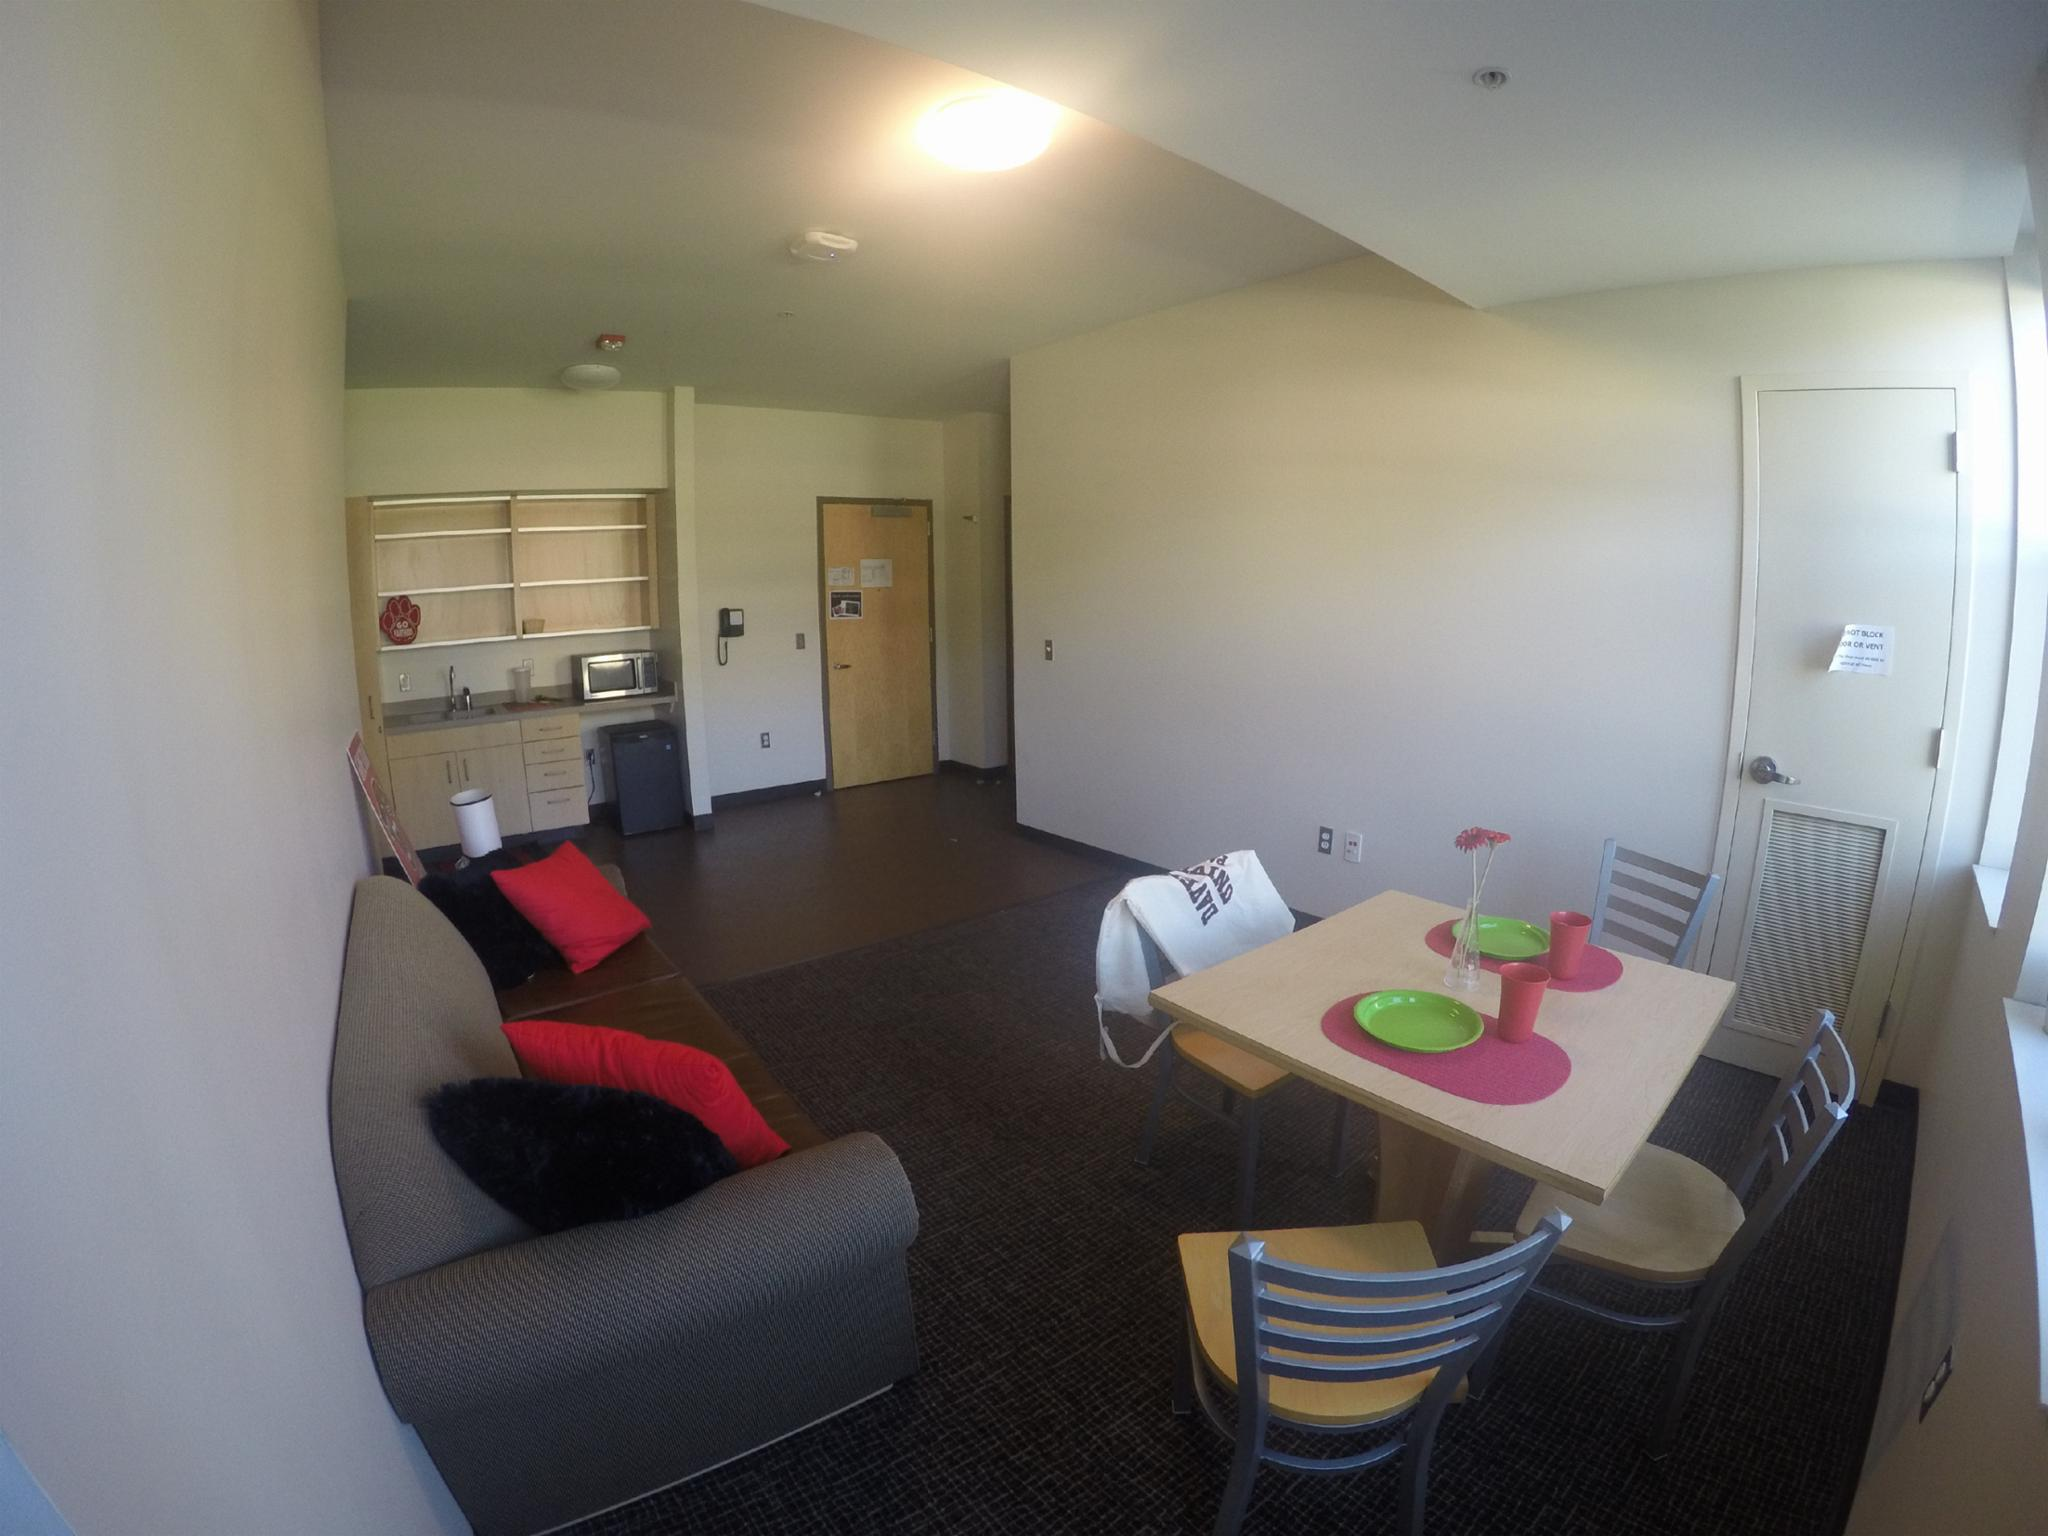 Experience Davenport University Lettinga Campus in Virtual Reality